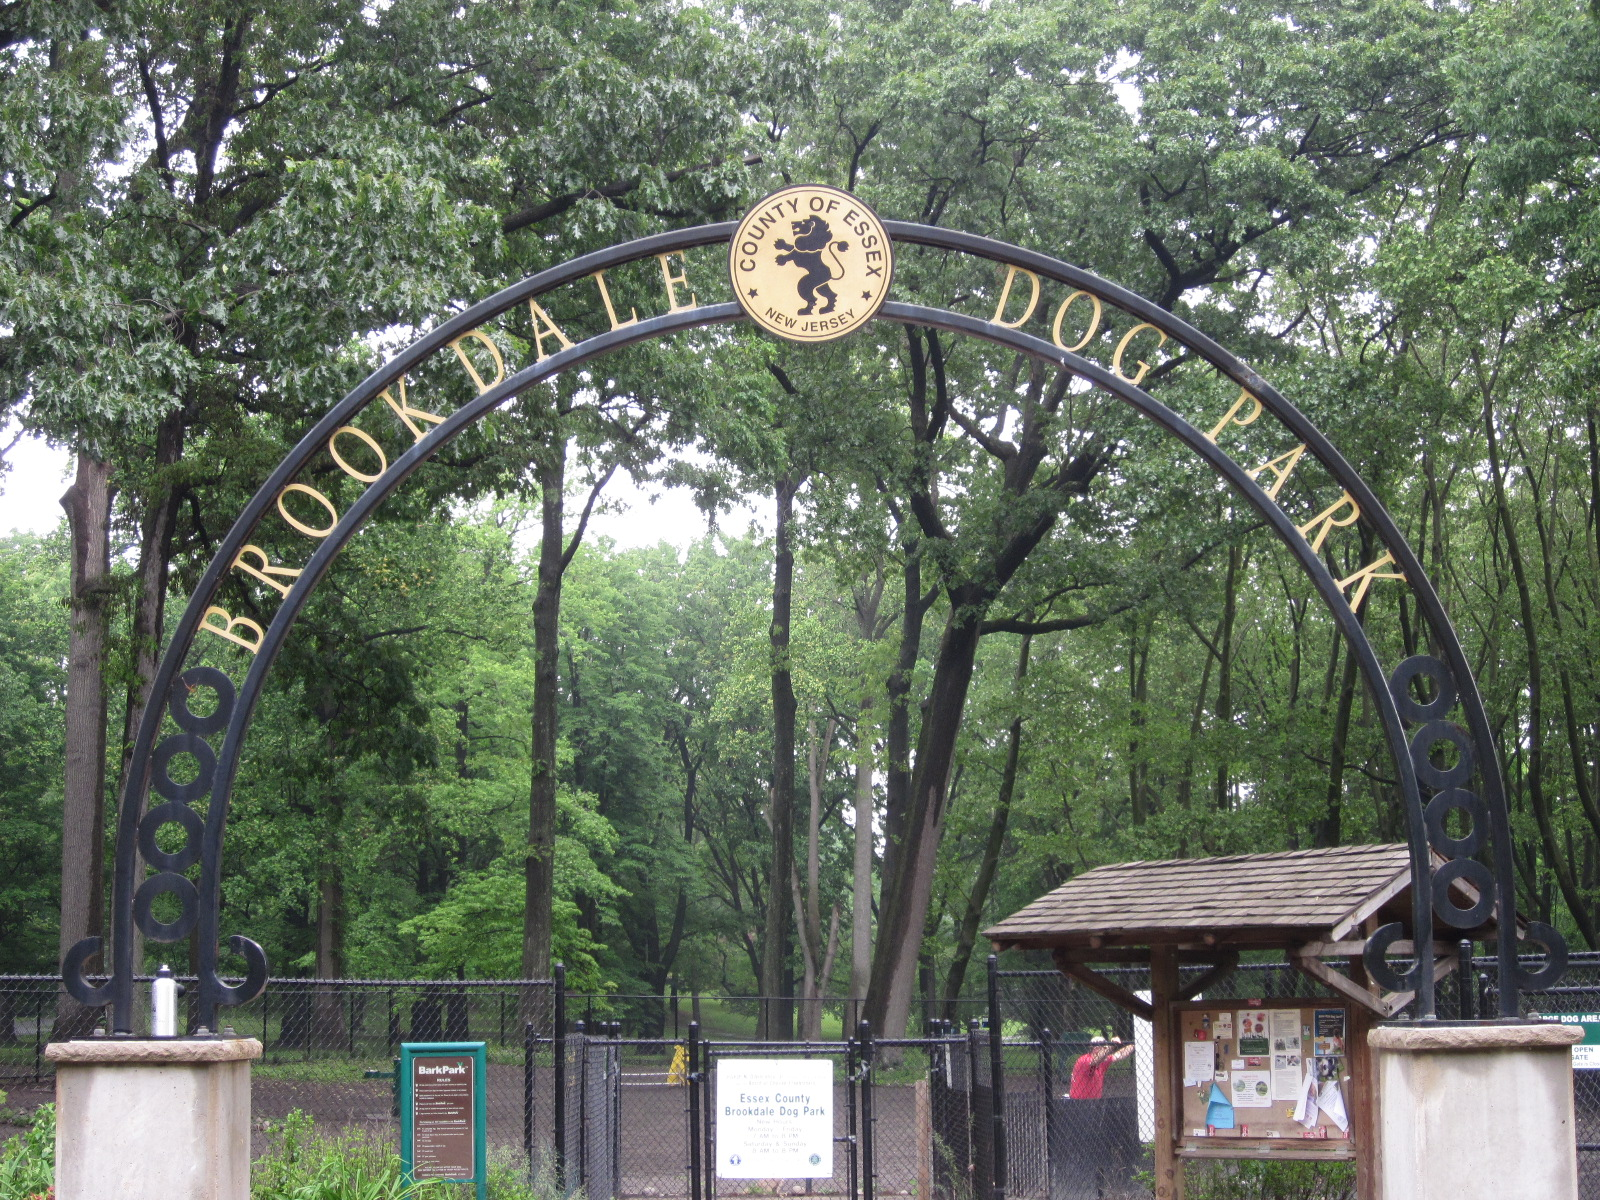 Main enterance to the dog park